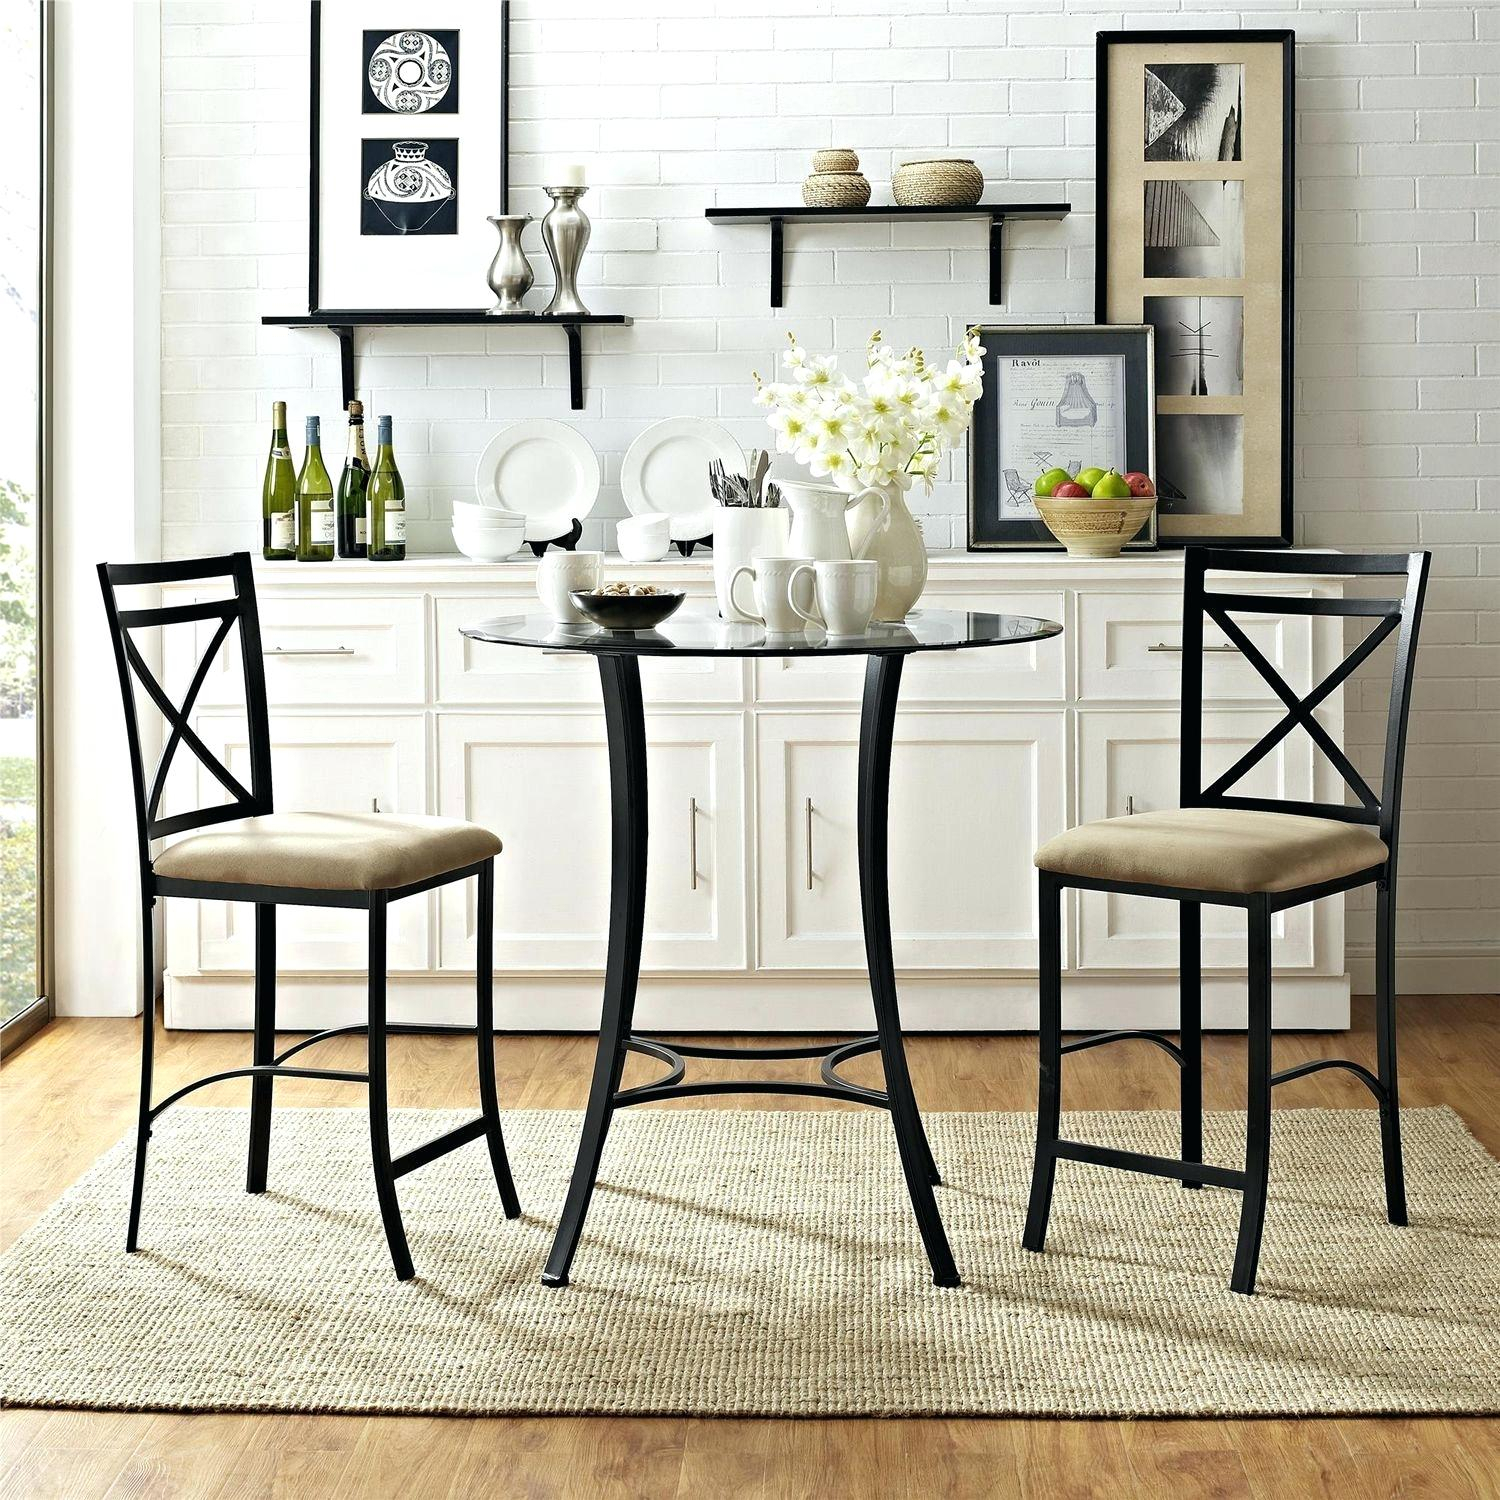 Most Recent Counter Height Breakfast Nook S Dining Set – Dortmundfcstore In Mysliwiec 5 Piece Counter Height Breakfast Nook Dining Sets (#7 of 20)